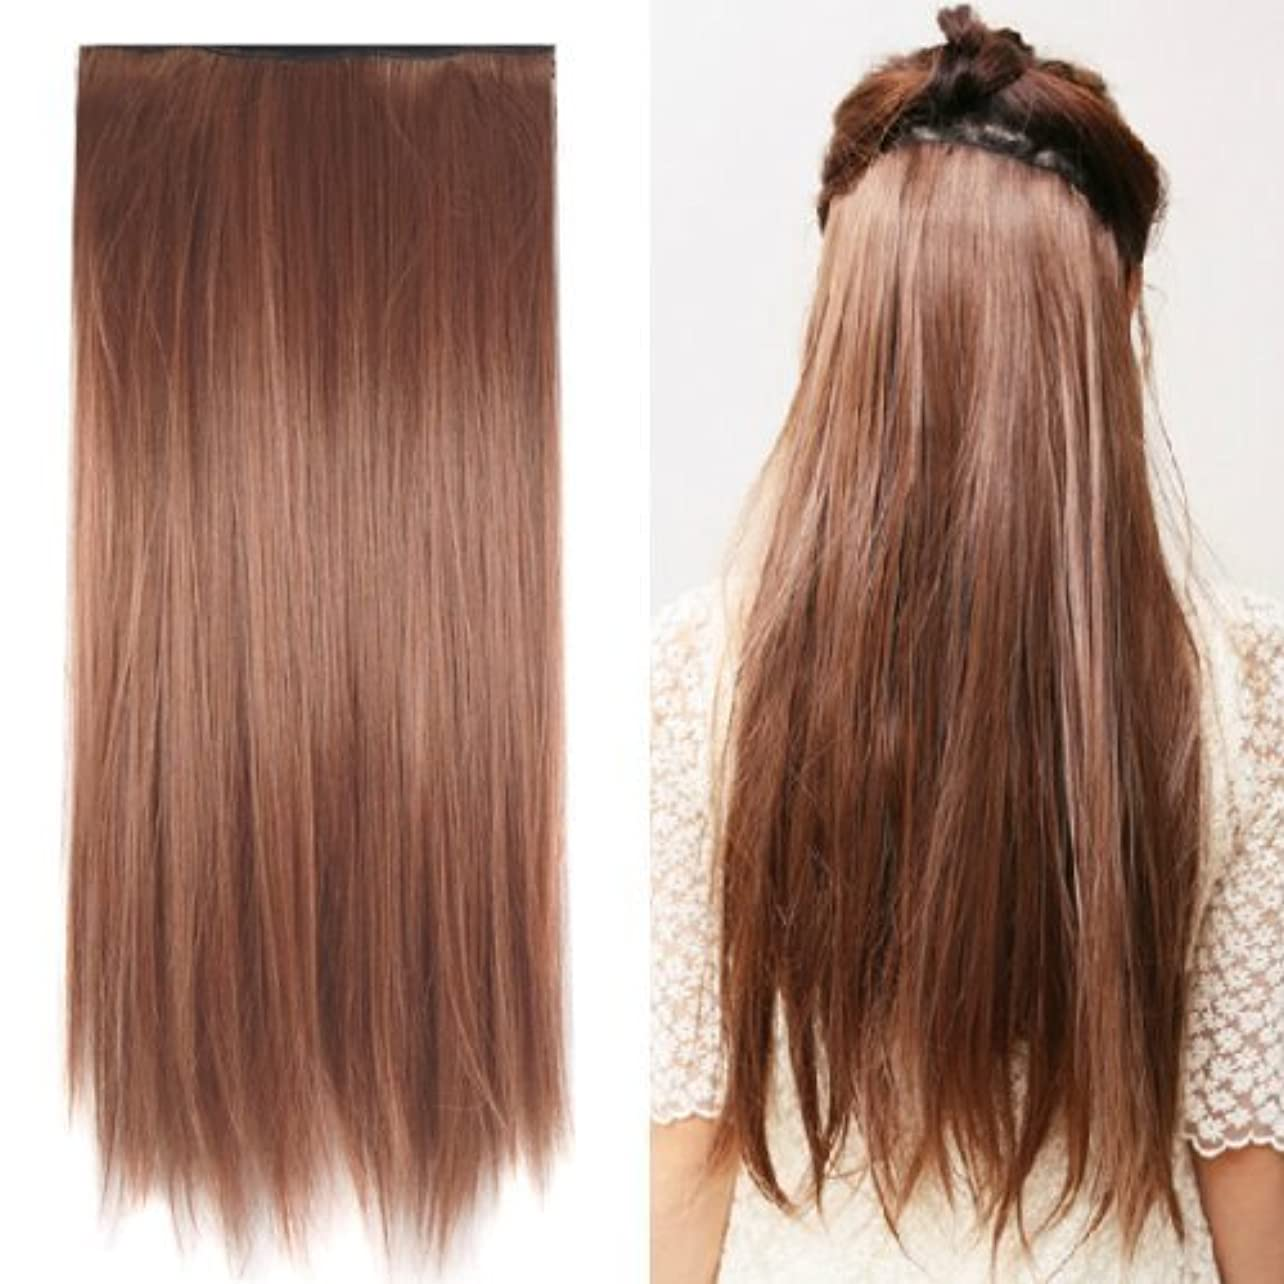 北疑い者埋めるSODIAL(R) Clip in on hair Straight Tail extensions New human heat resistant fibe - Blonde